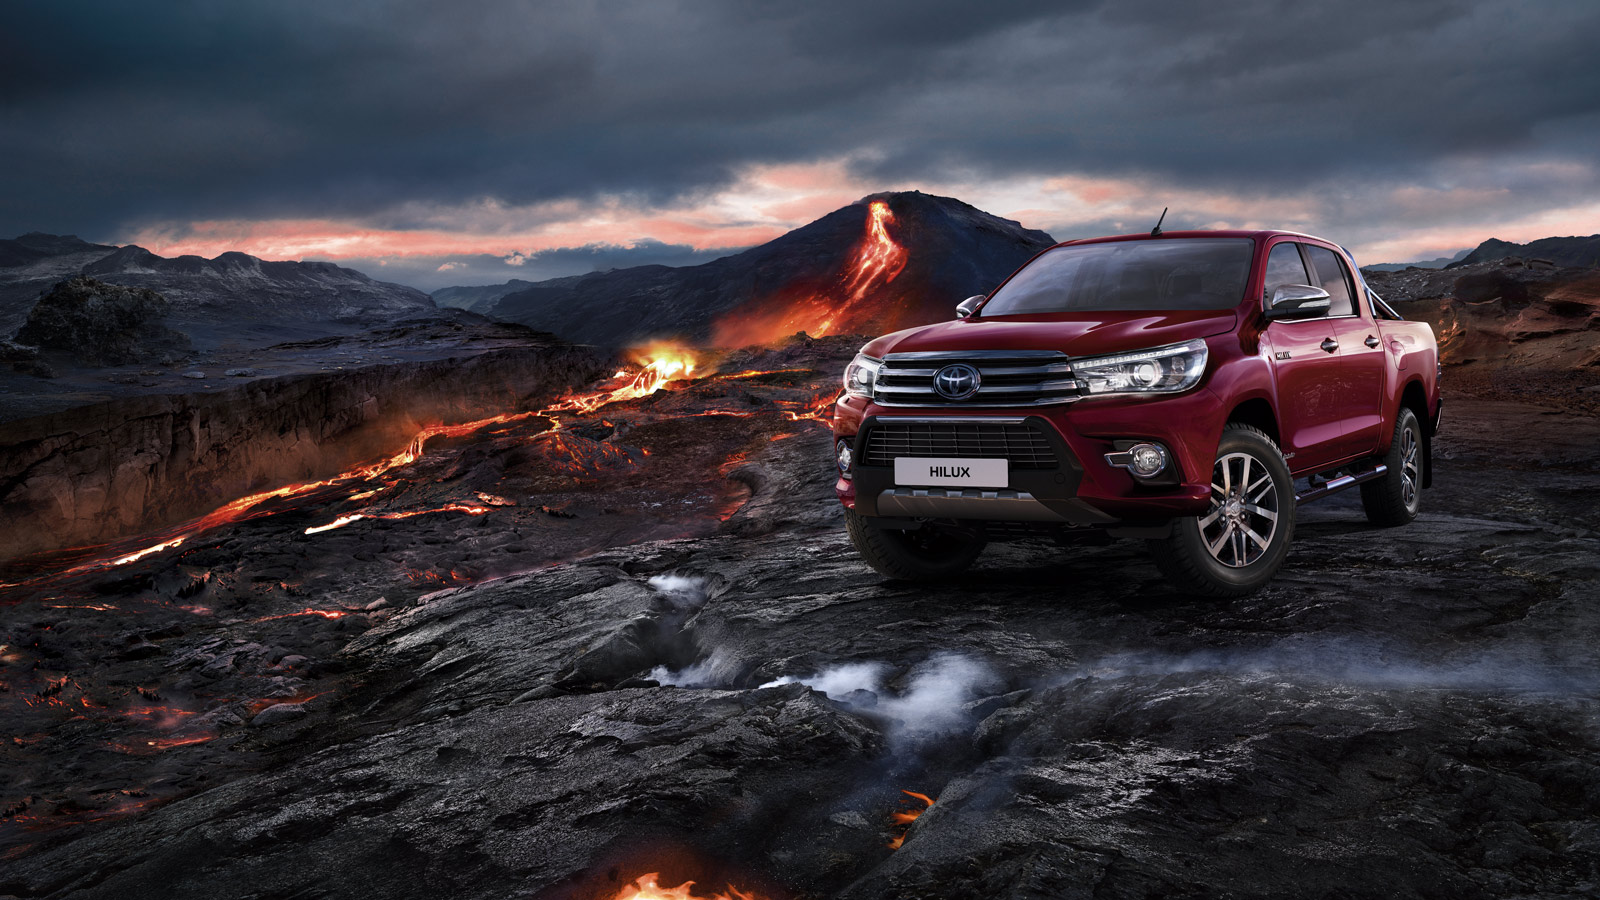 Hilux, Red exterior, front side view, volcano background, night-time shot.